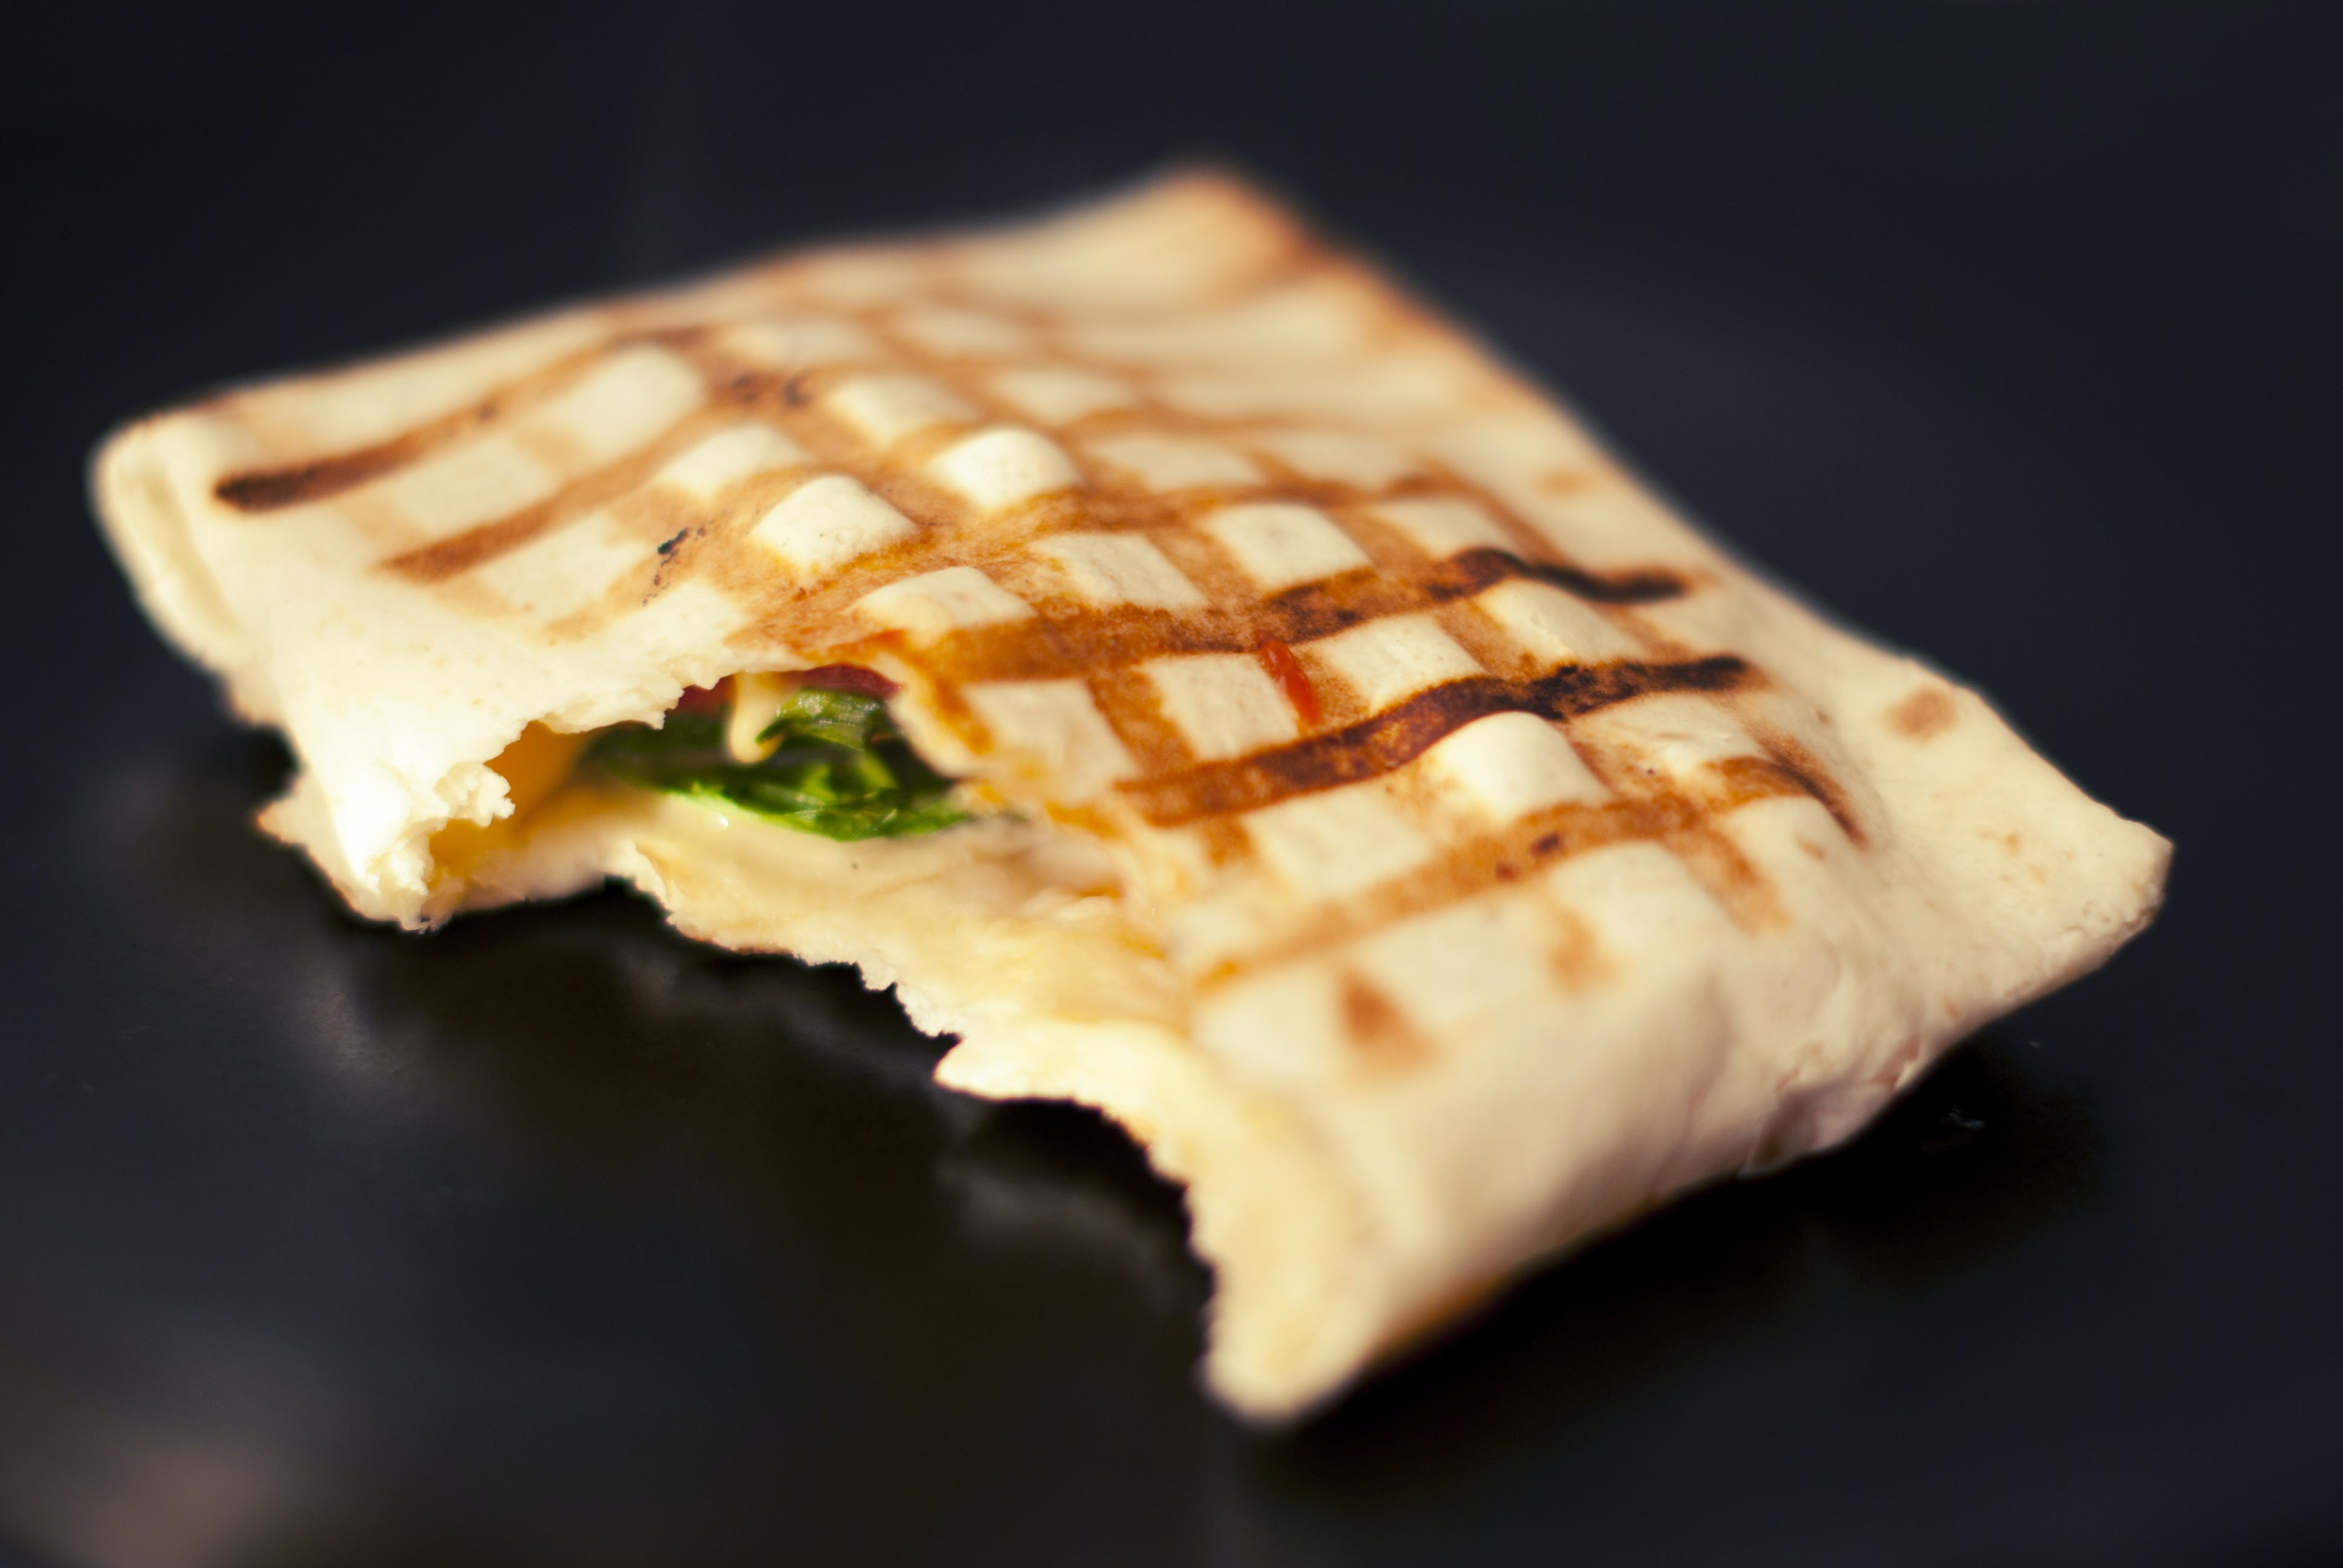 Selective Focus Photography of Baked Pastry